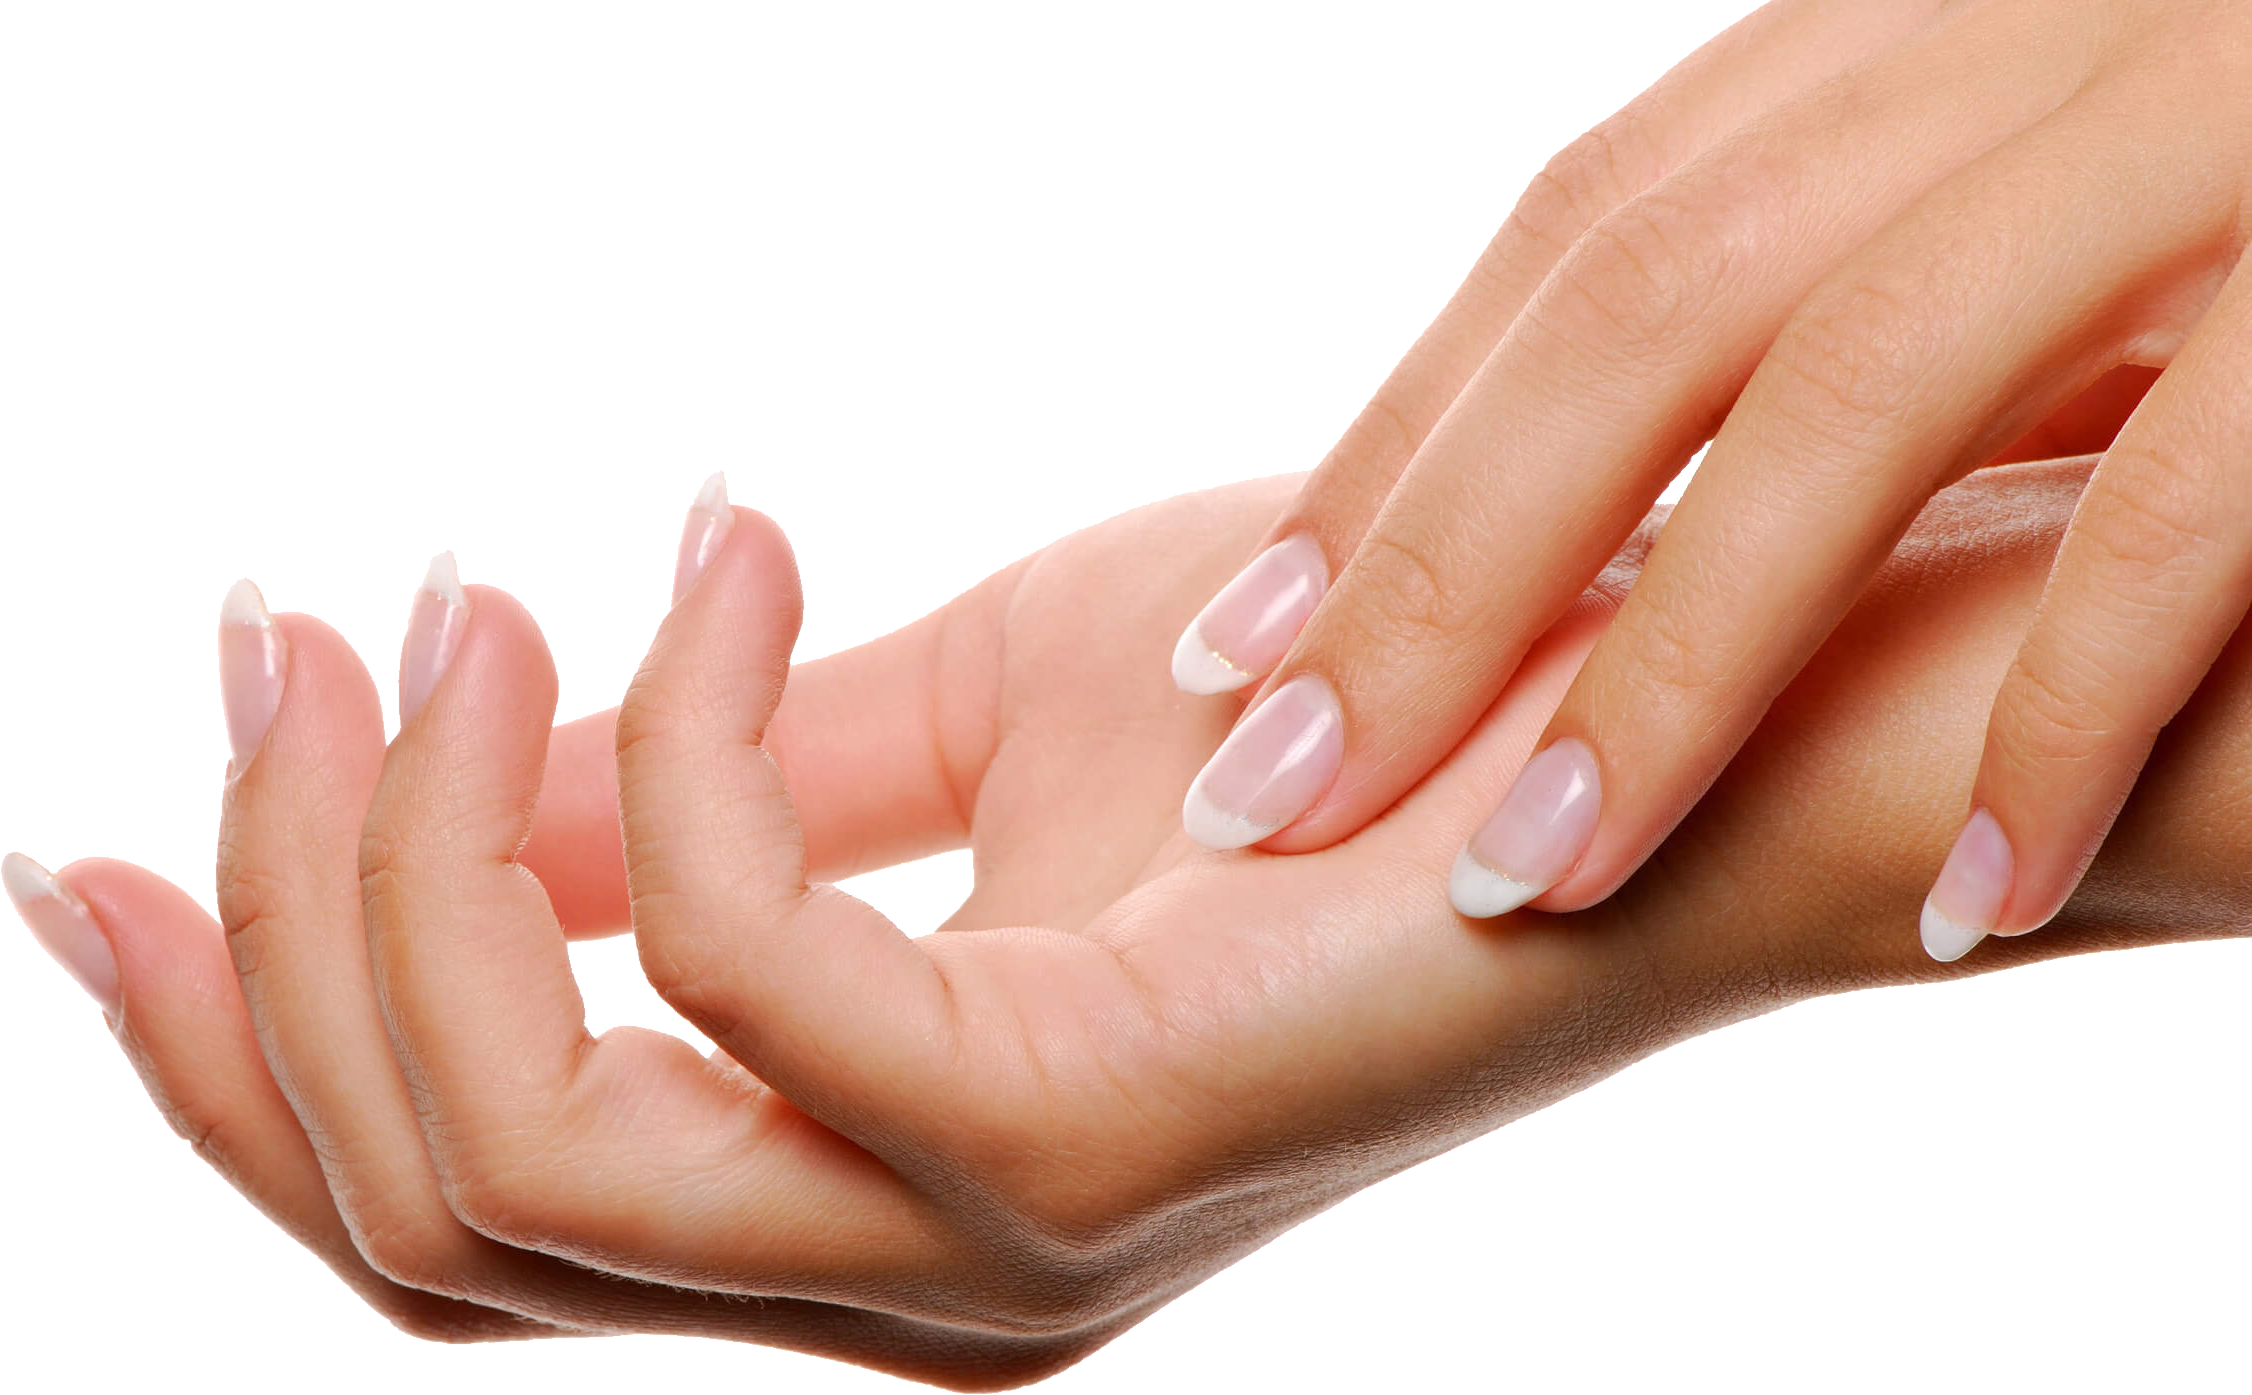 Nails png image purepng. Skin clipart manicured hand